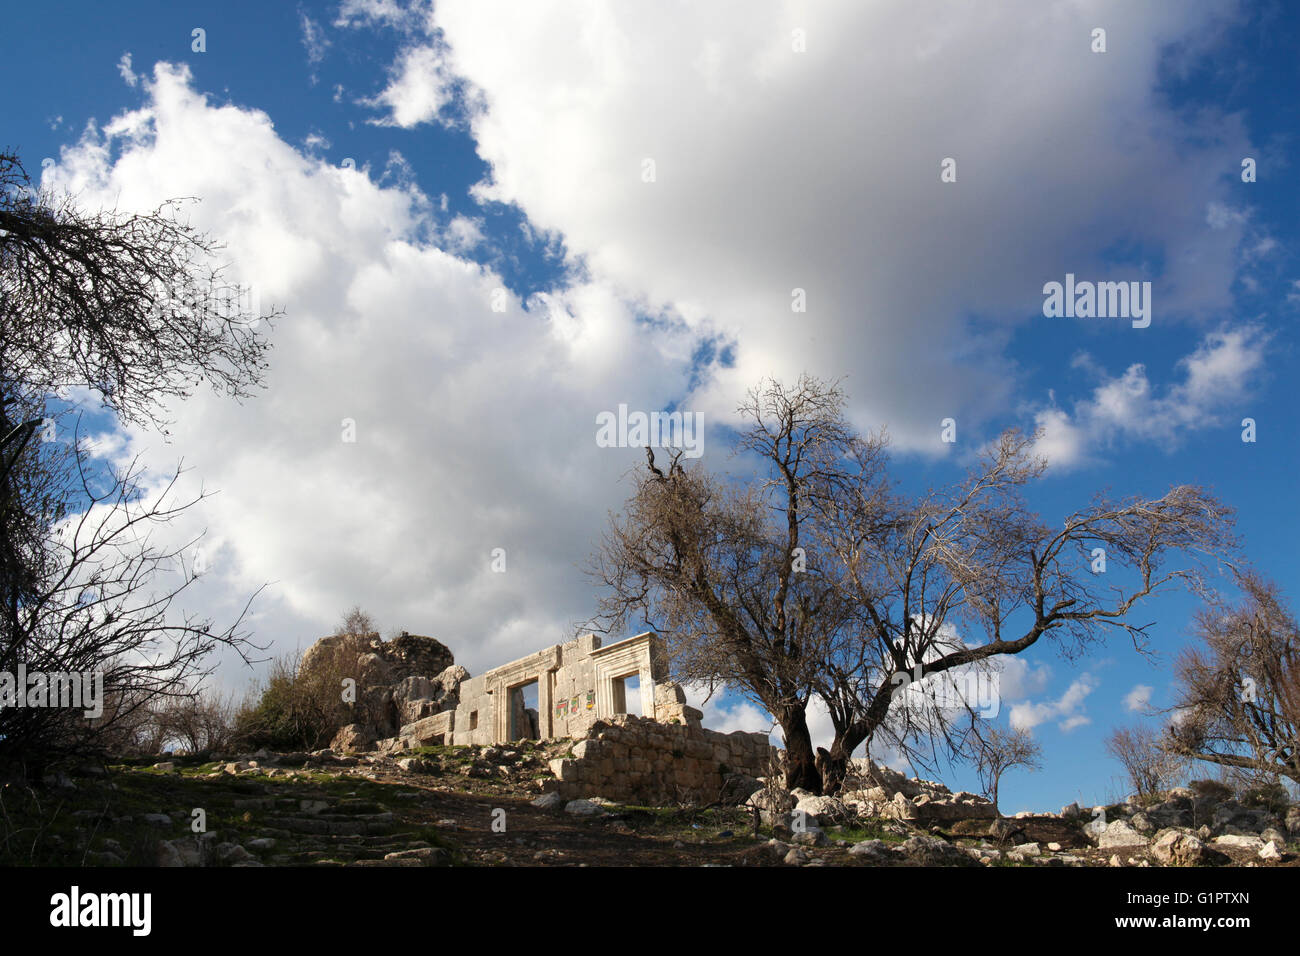 Neglected archeological ruins. Photographed in Israel Stock Photo